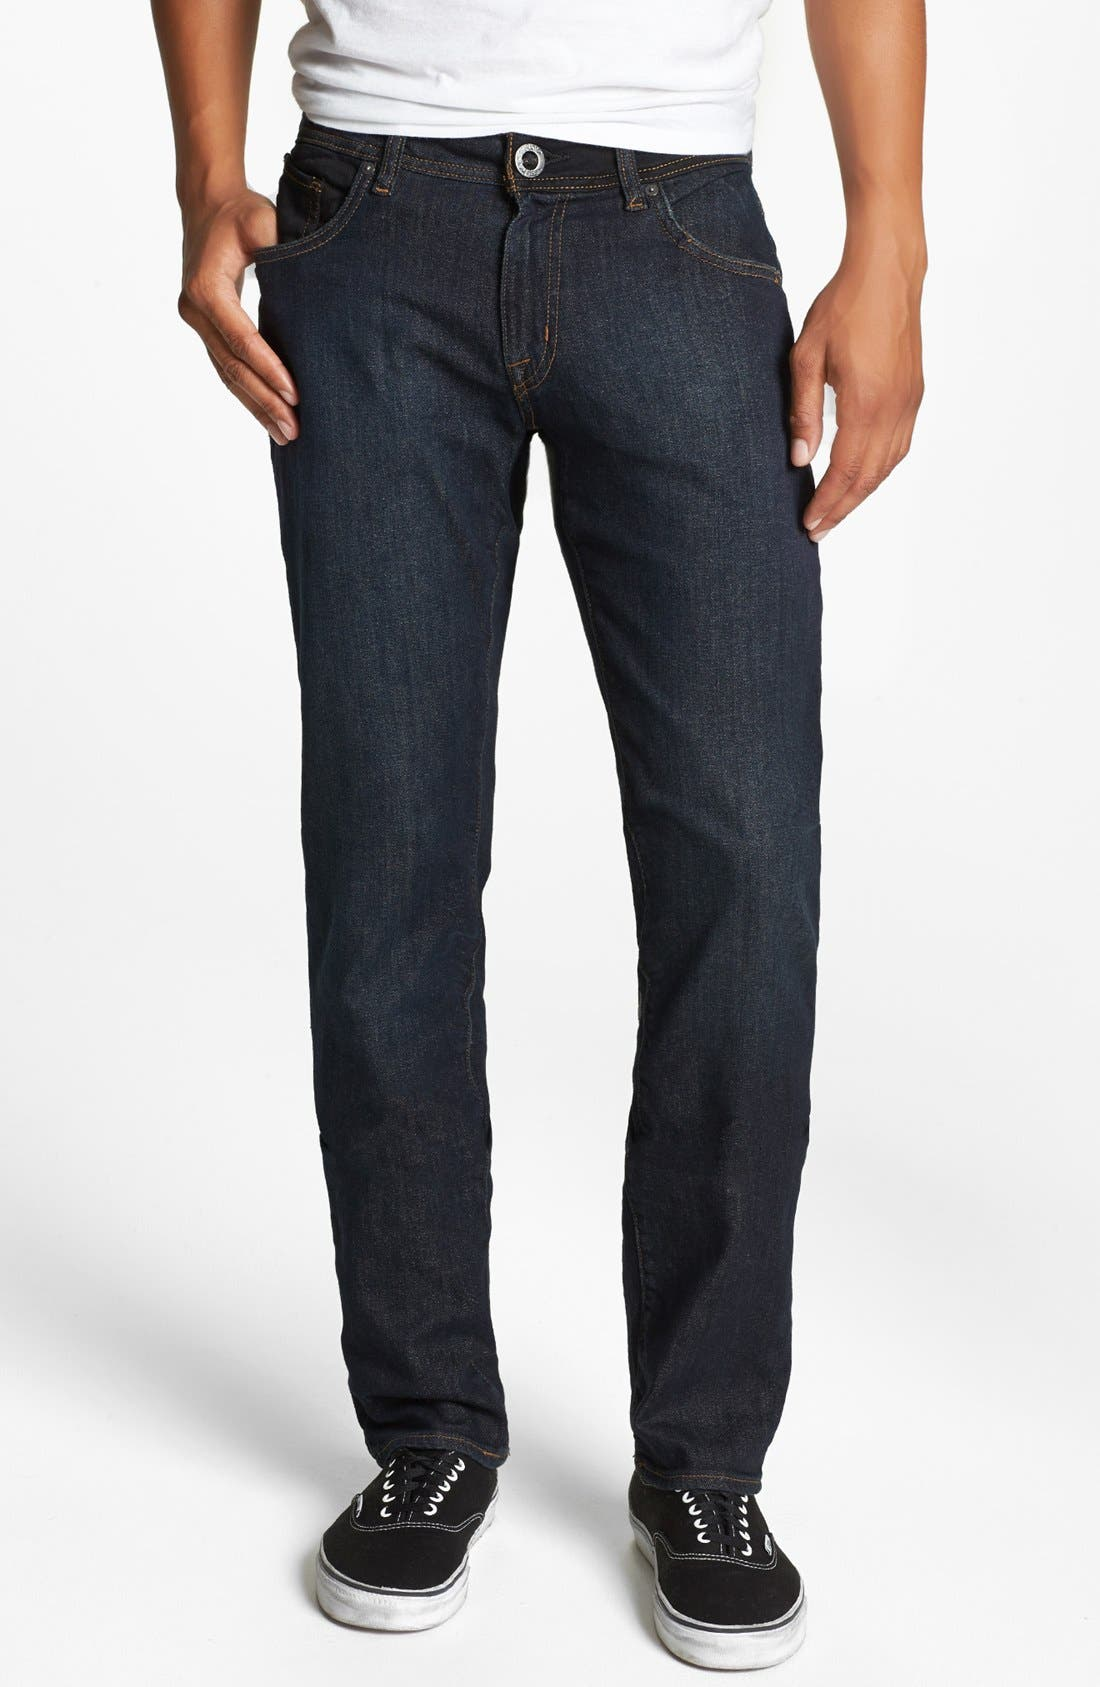 Alternate Image 2  - Volcom 'Vorta' Slim Straight Leg Jeans (Dark Blue Rinse)